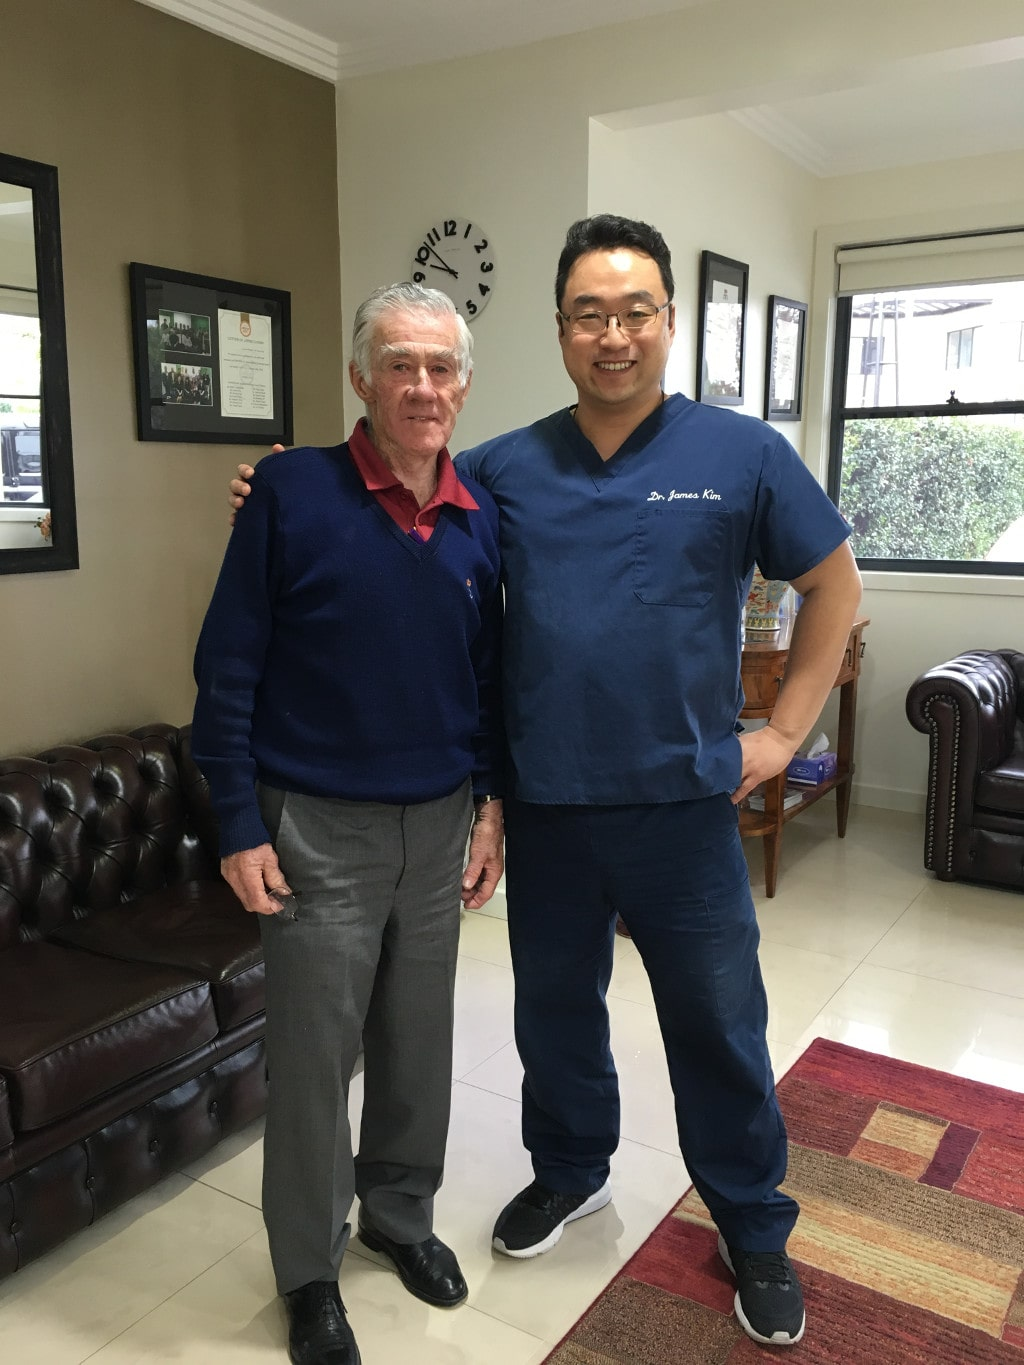 Ken Rosewall, former world top-ranking amateur and professional tennis player in Hills Dental Care